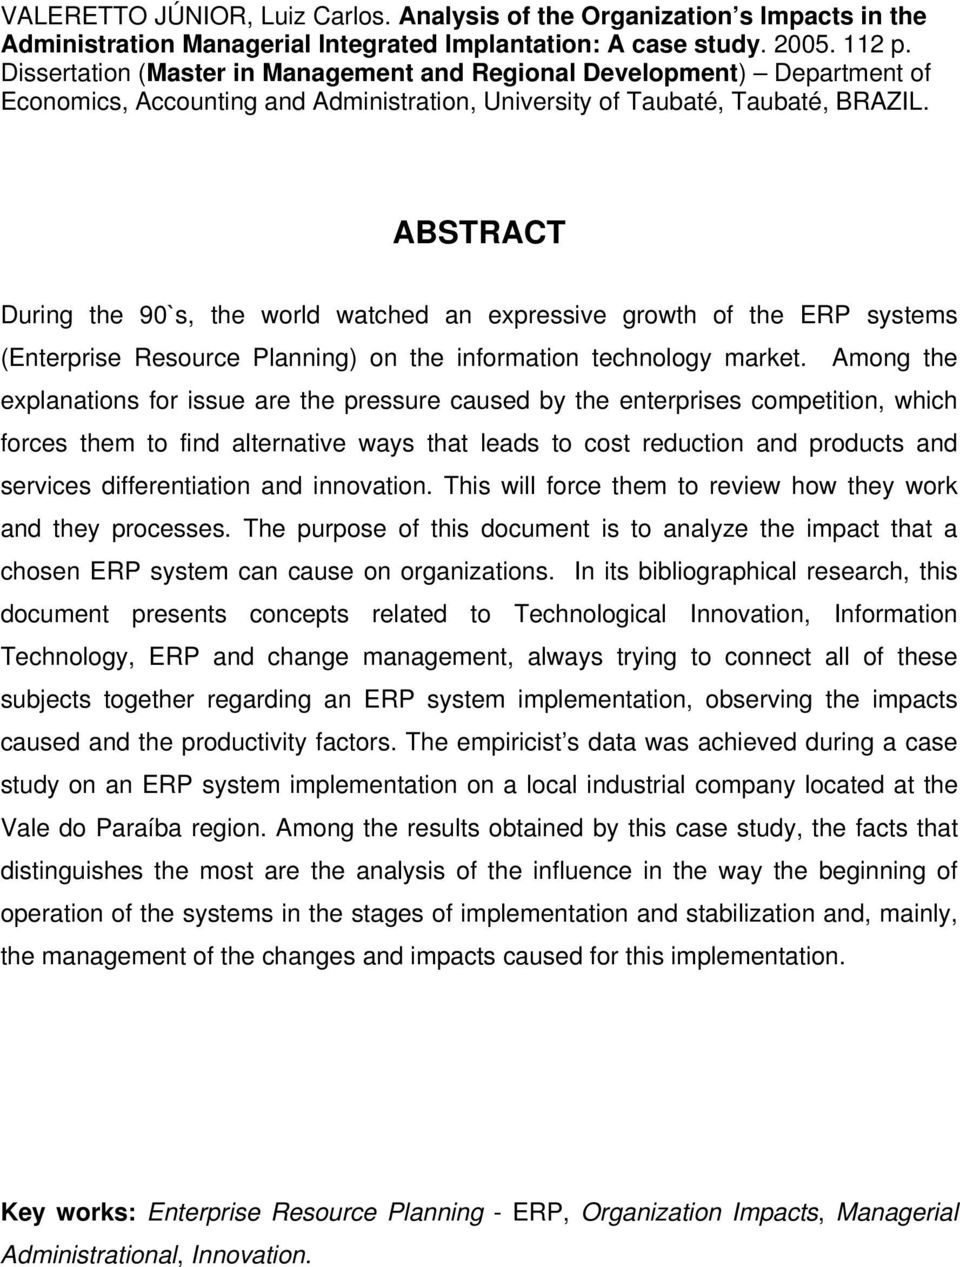 ABSTRACT During the 90`s, the world watched an expressive growth of the ERP systems (Enterprise Resource Planning) on the information technology market.